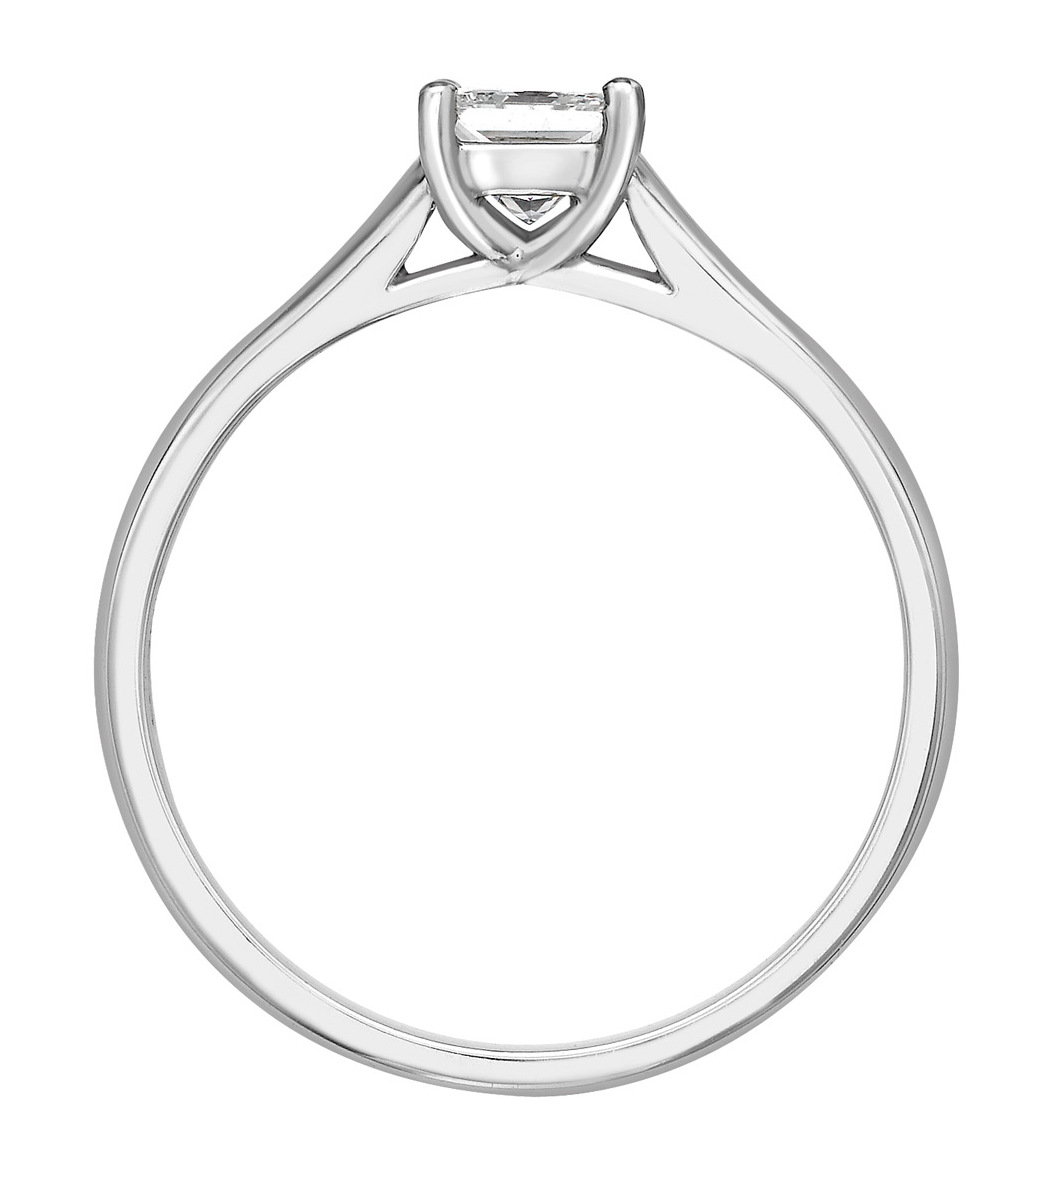 Princess Cut Four Claw White Gold Engagement Ring GRC759 Image 2